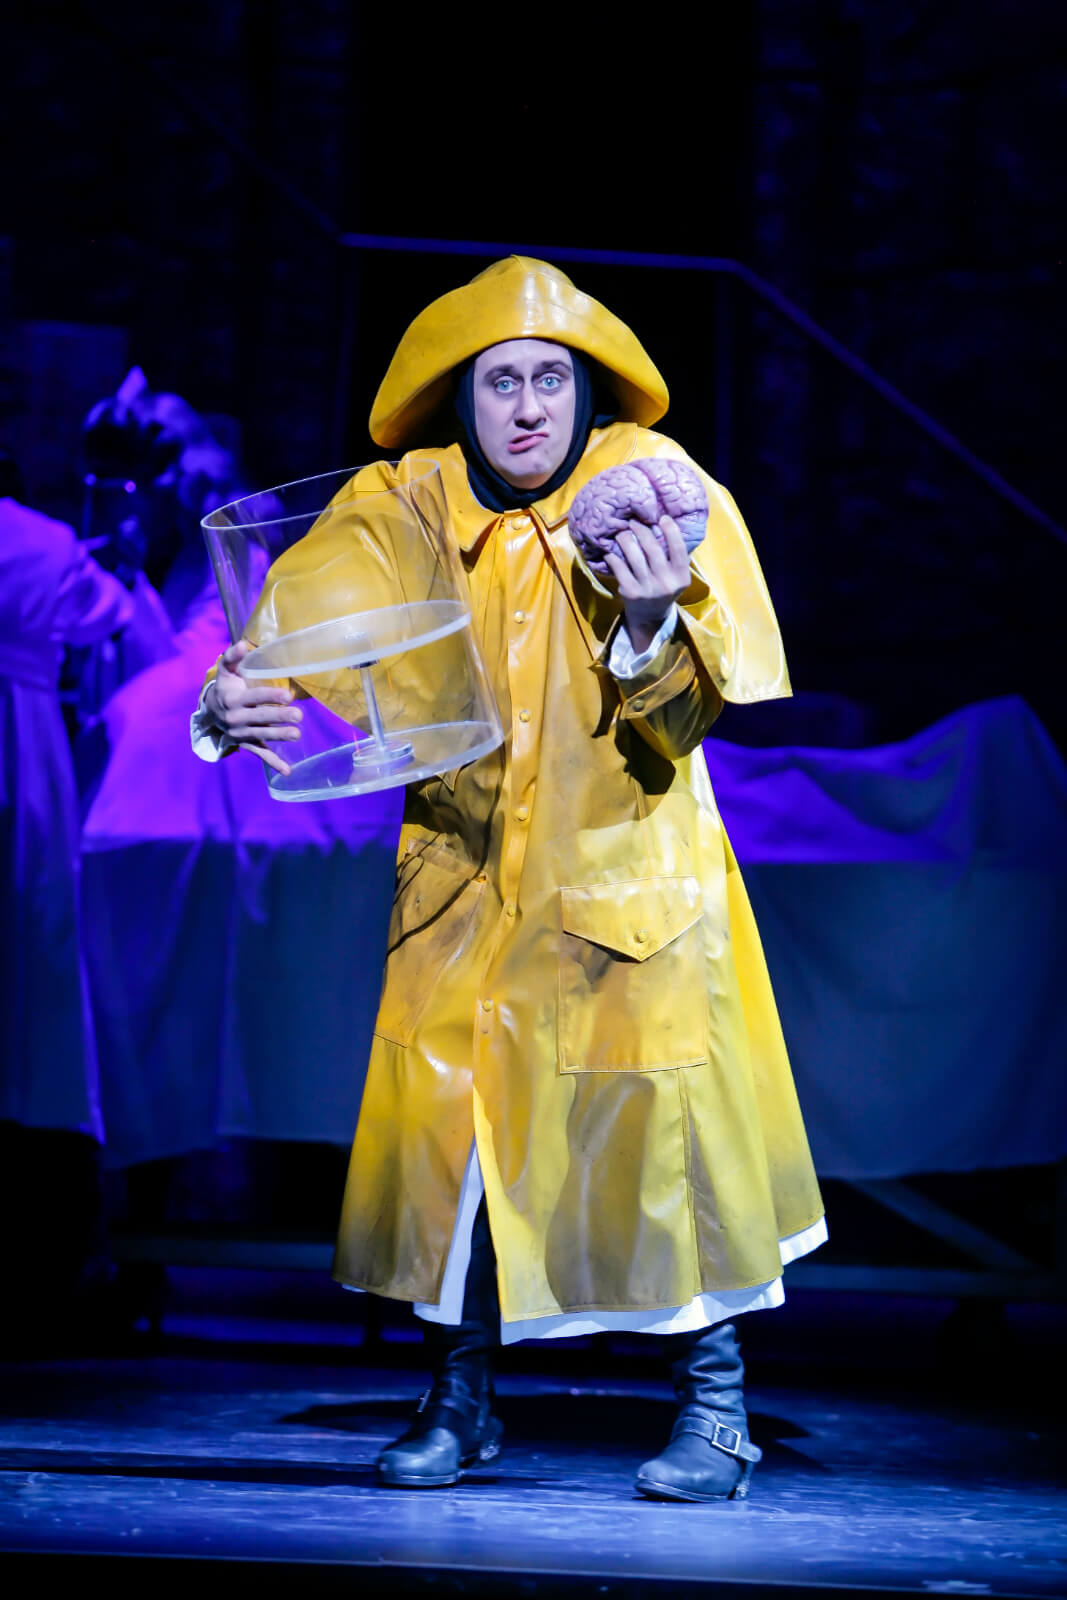 Igor (Chris Fitzgerald) in a yellow rain coat, holding a human brain. He is stealing the brain from the brain depository.